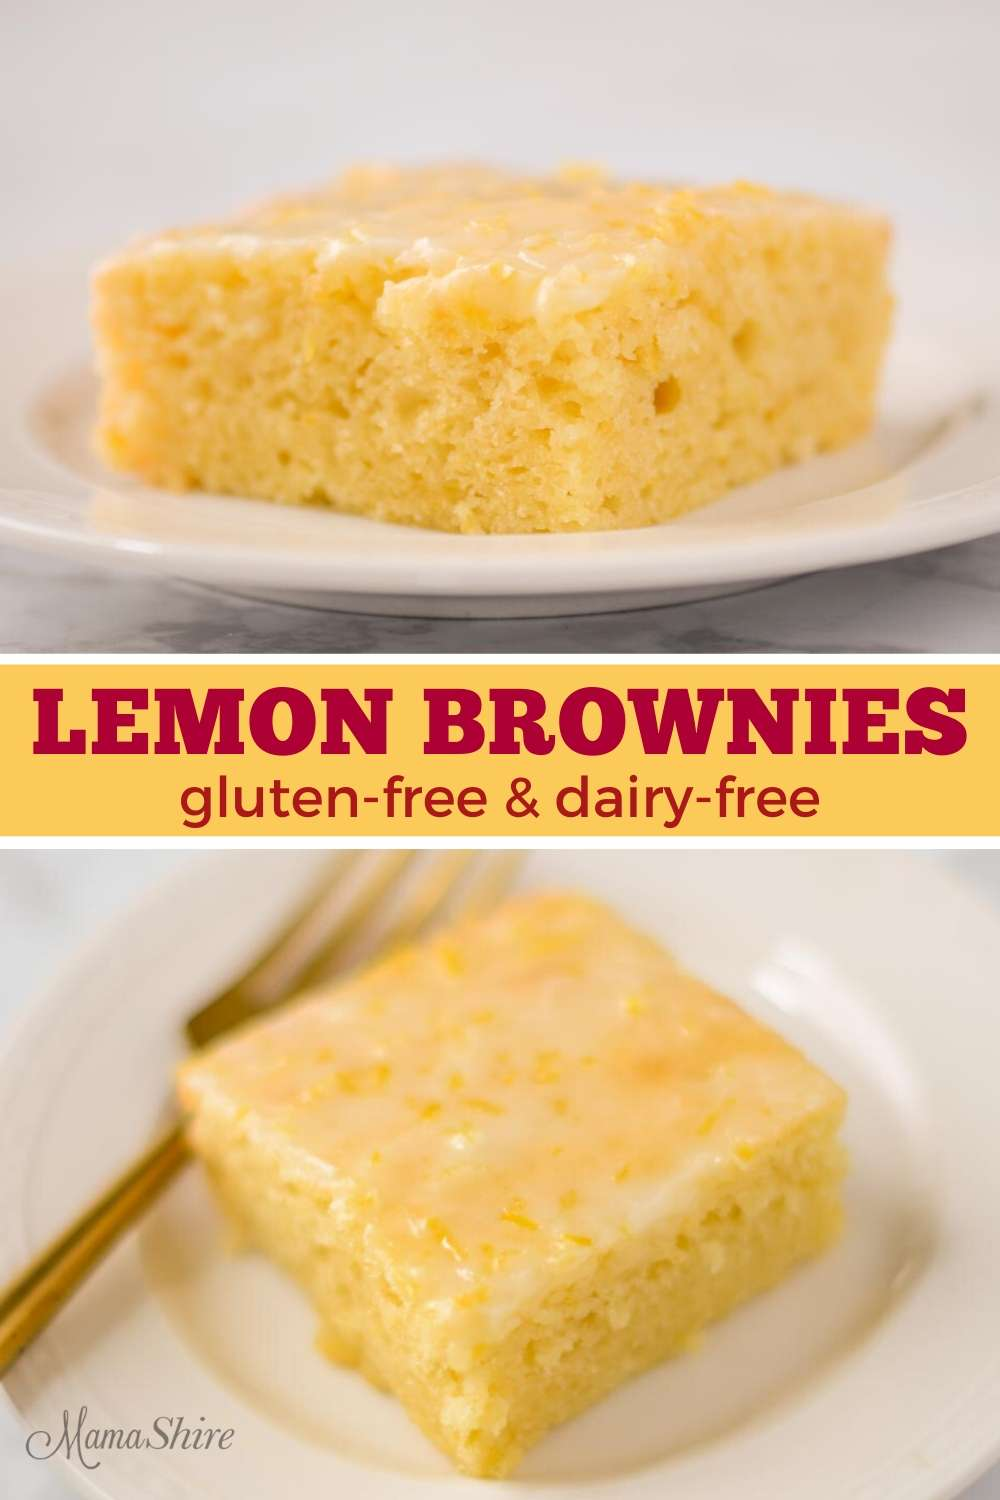 A slice of gluten-free lemon brownies on a white dessert plate.